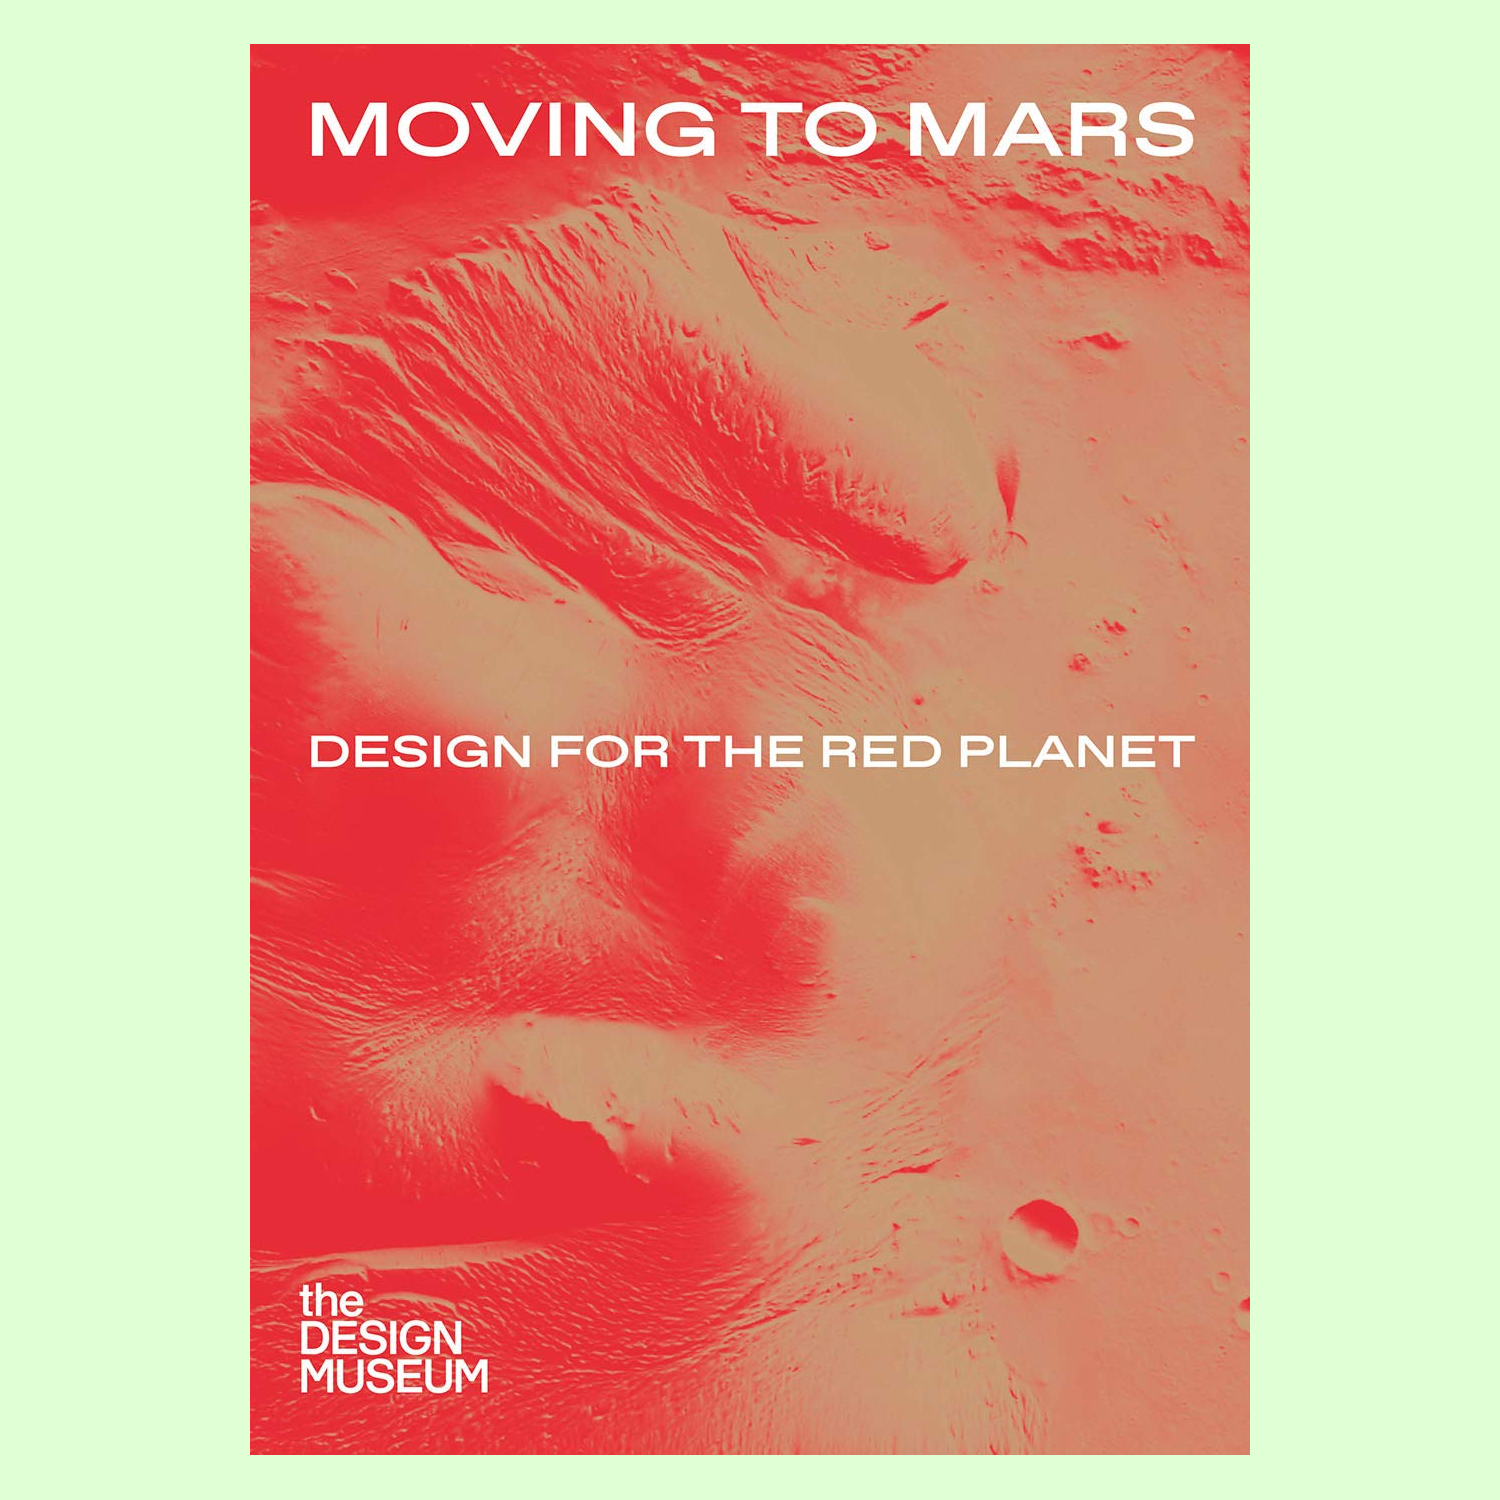 Moving to Mars - Design for a Red Planet